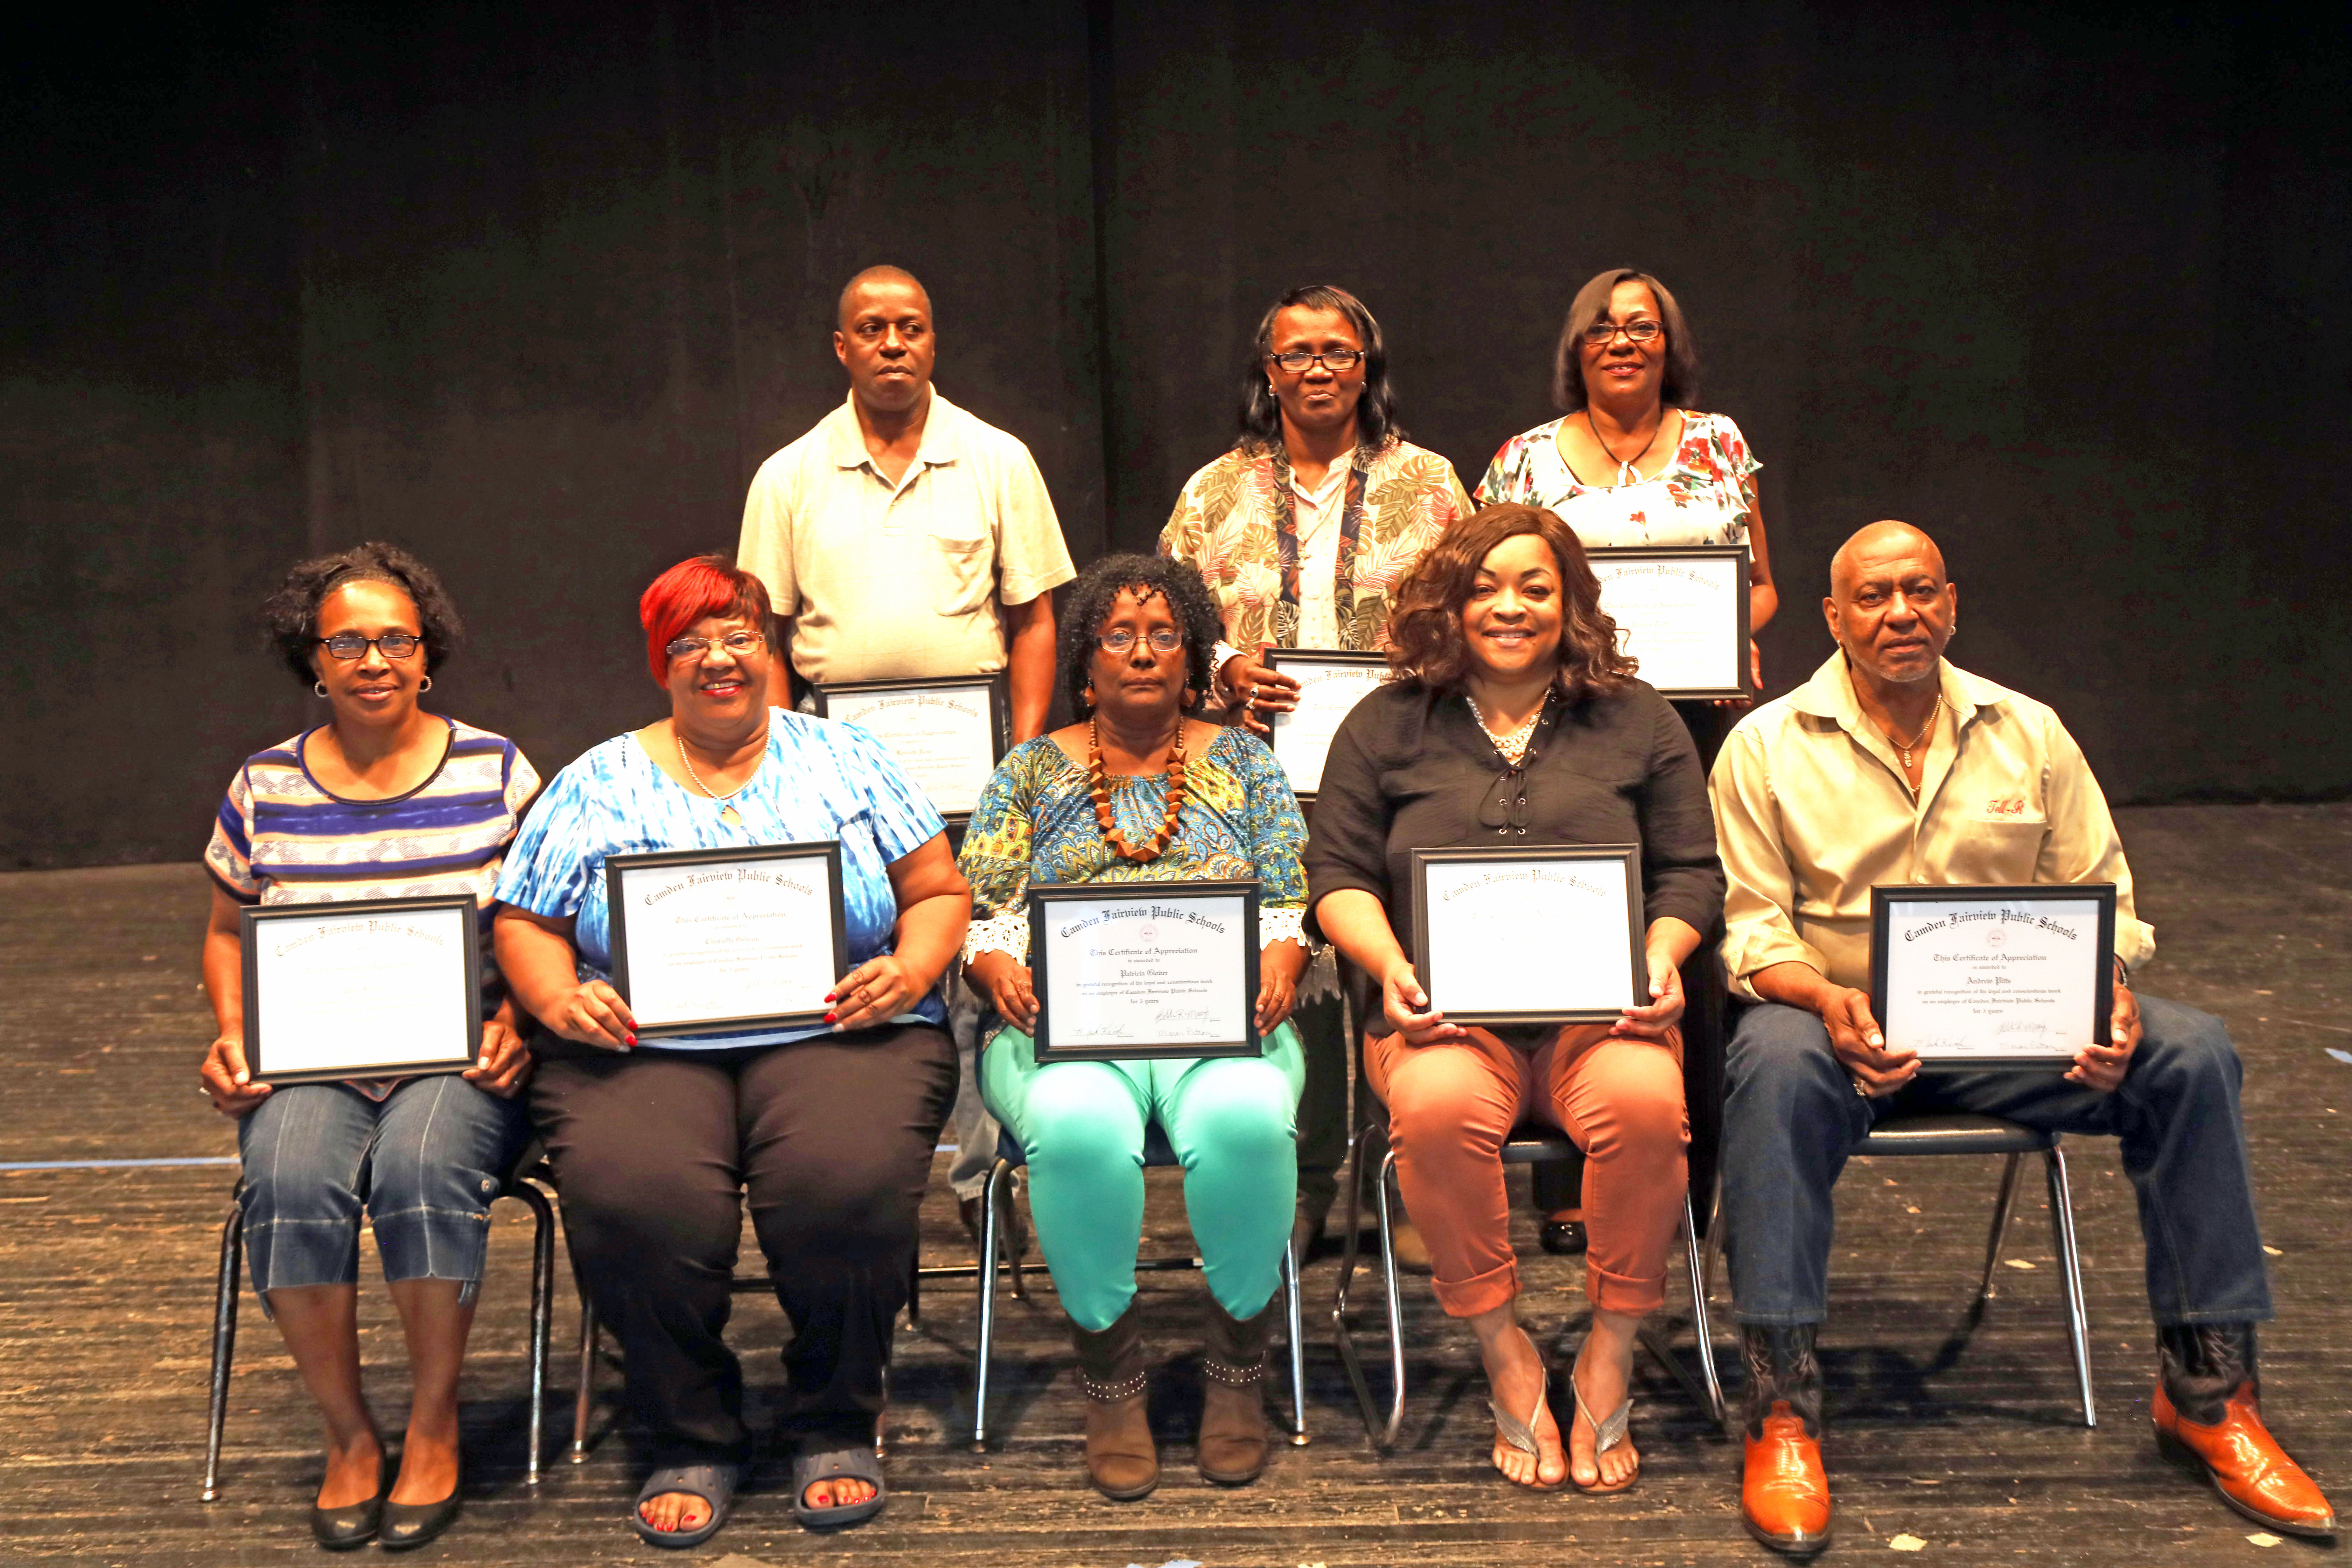 5 Year Classified: Front Row L to R: Pam Fields, Charlotte Gibson, Paticia Glover, Carrolo Jackson, Andrew Ptts  Back Row L to R: Kenneth Ross, Angela Rogers, Patricia Todd